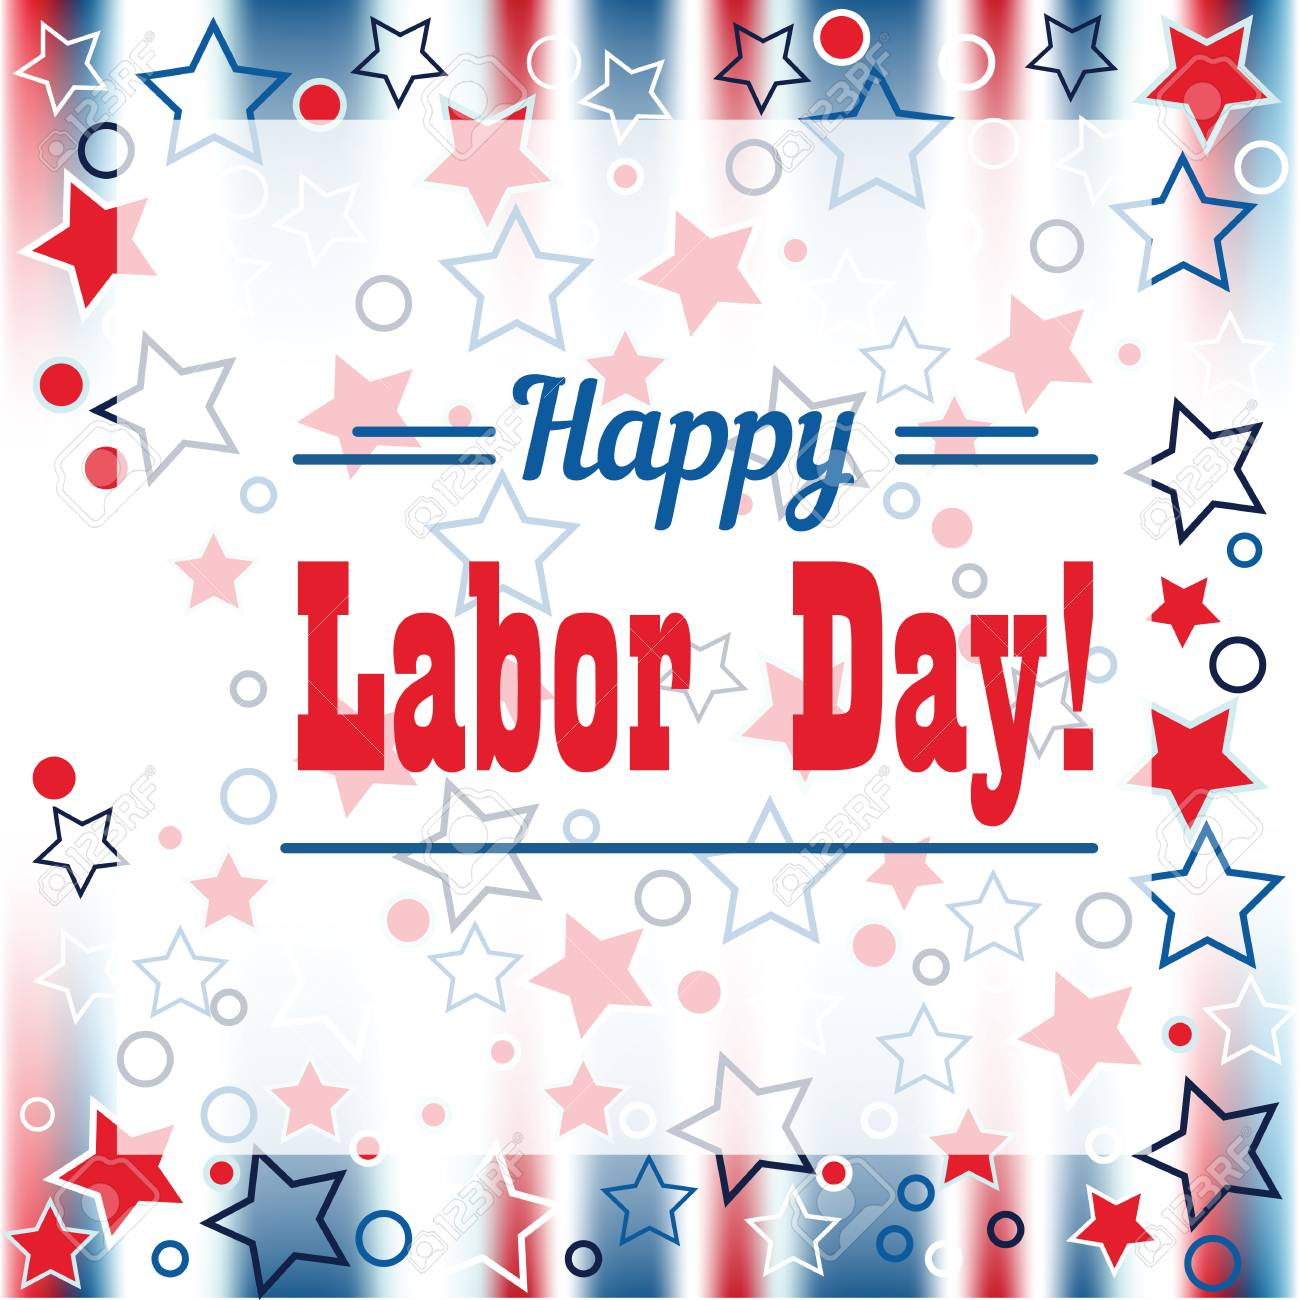 Holiday Greetings Illustration Labor Day Royalty Free Cliparts